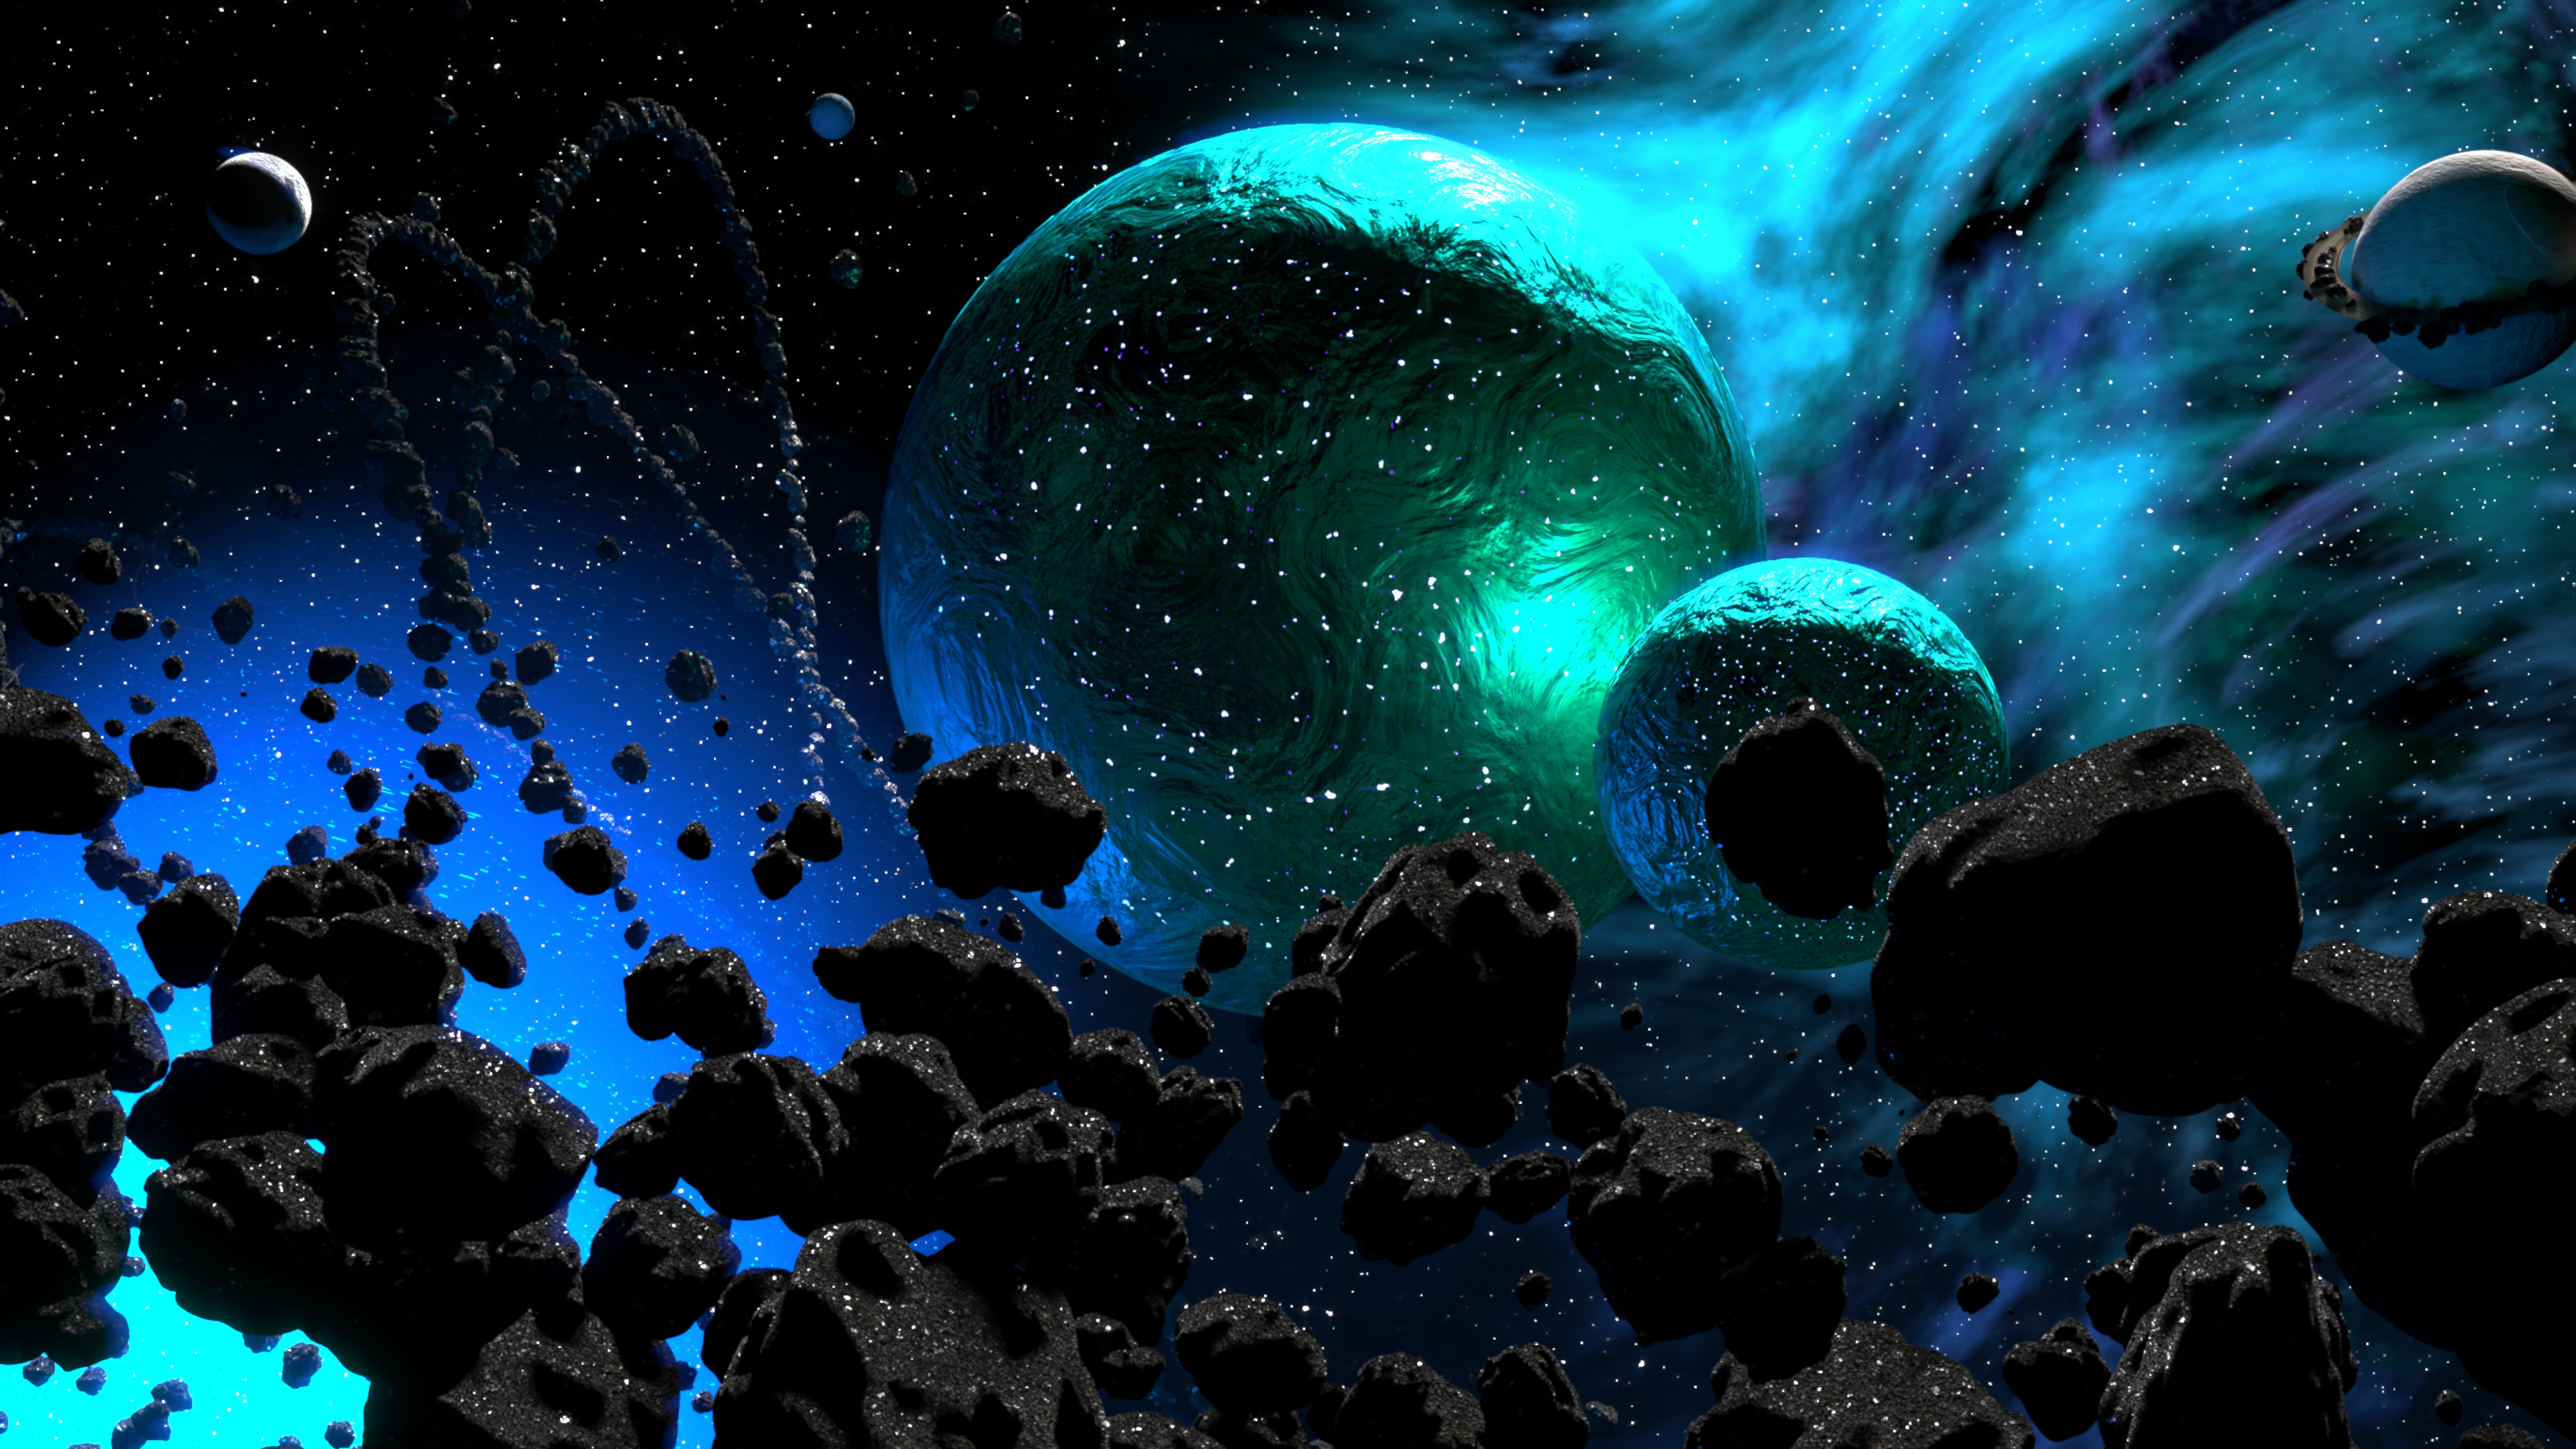 112110 download wallpaper Asteroids, Universe, Nebula, Galaxy, Planets screensavers and pictures for free